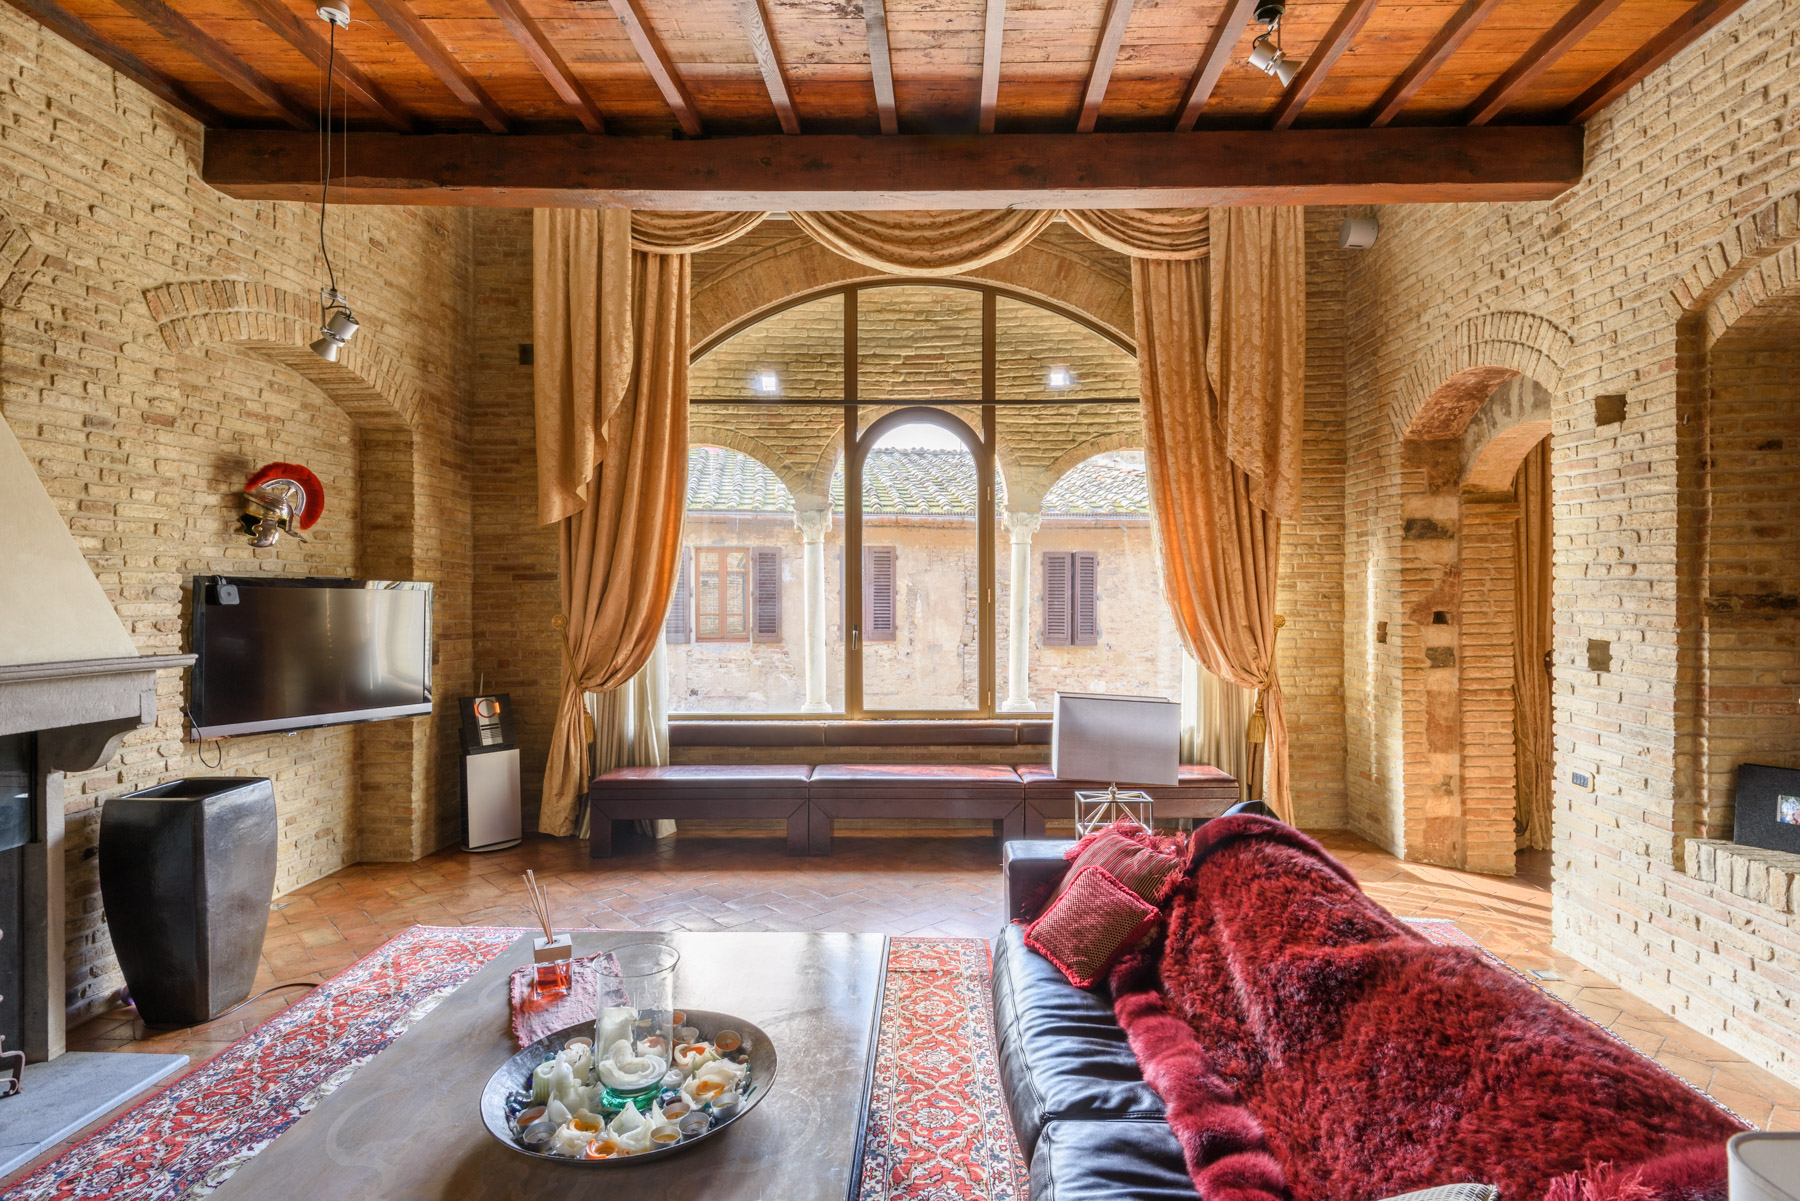 Apartment for Sale at Medieval Tower in the center of San Gimignano Vicolo delle Vergini San Gimignano, 53037 Italy